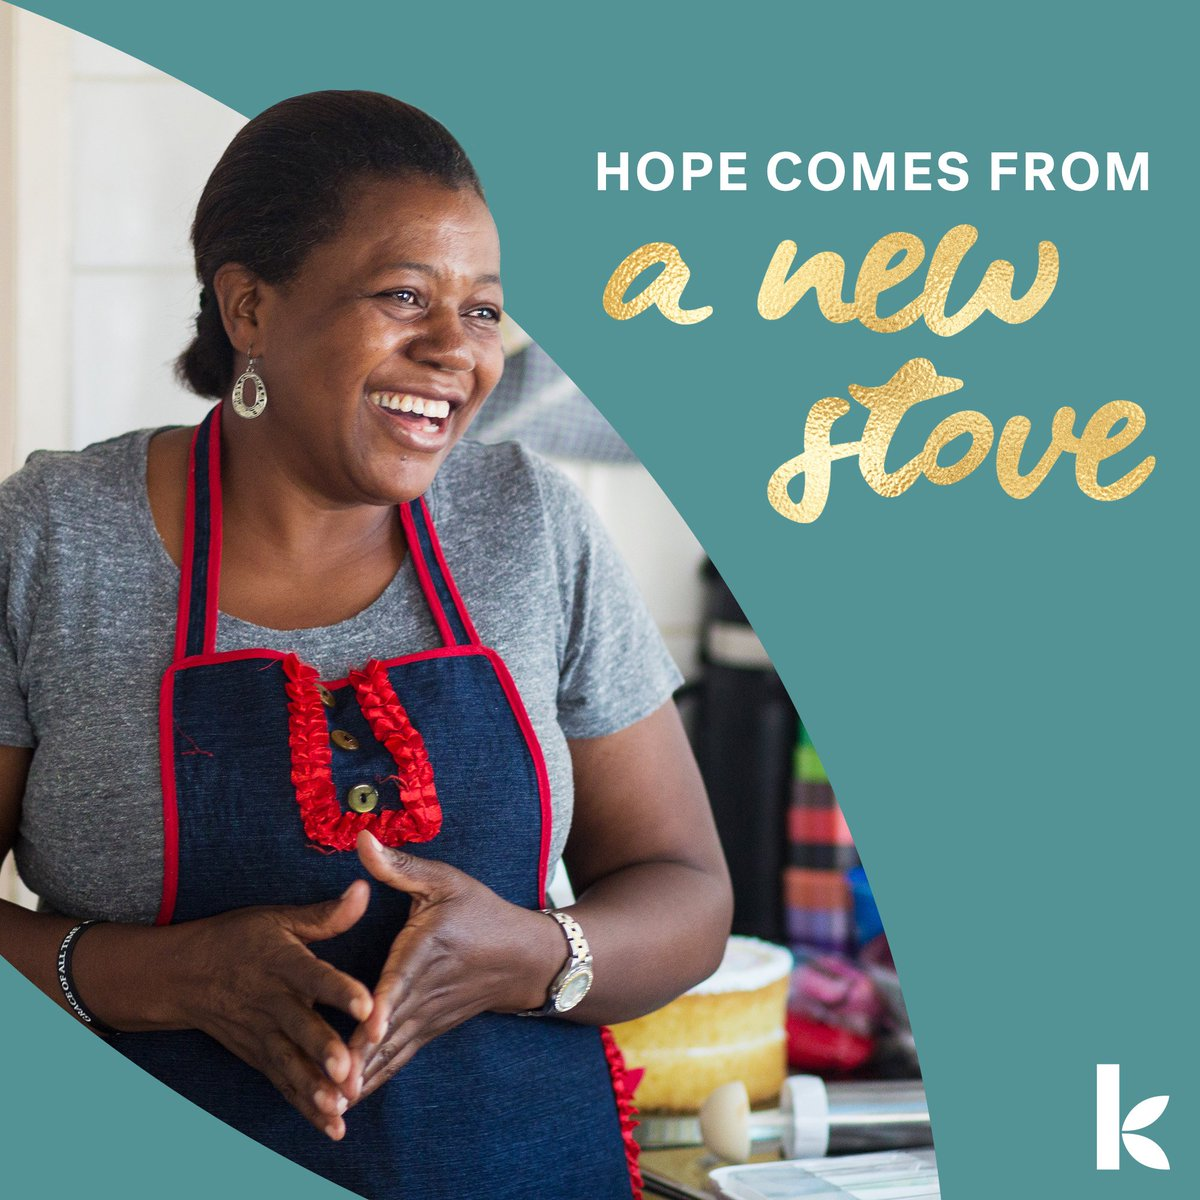 ... Kiva as a holiday gift. As of this morning I have lended more than $325 on that initial credit to projects in 11 countries.